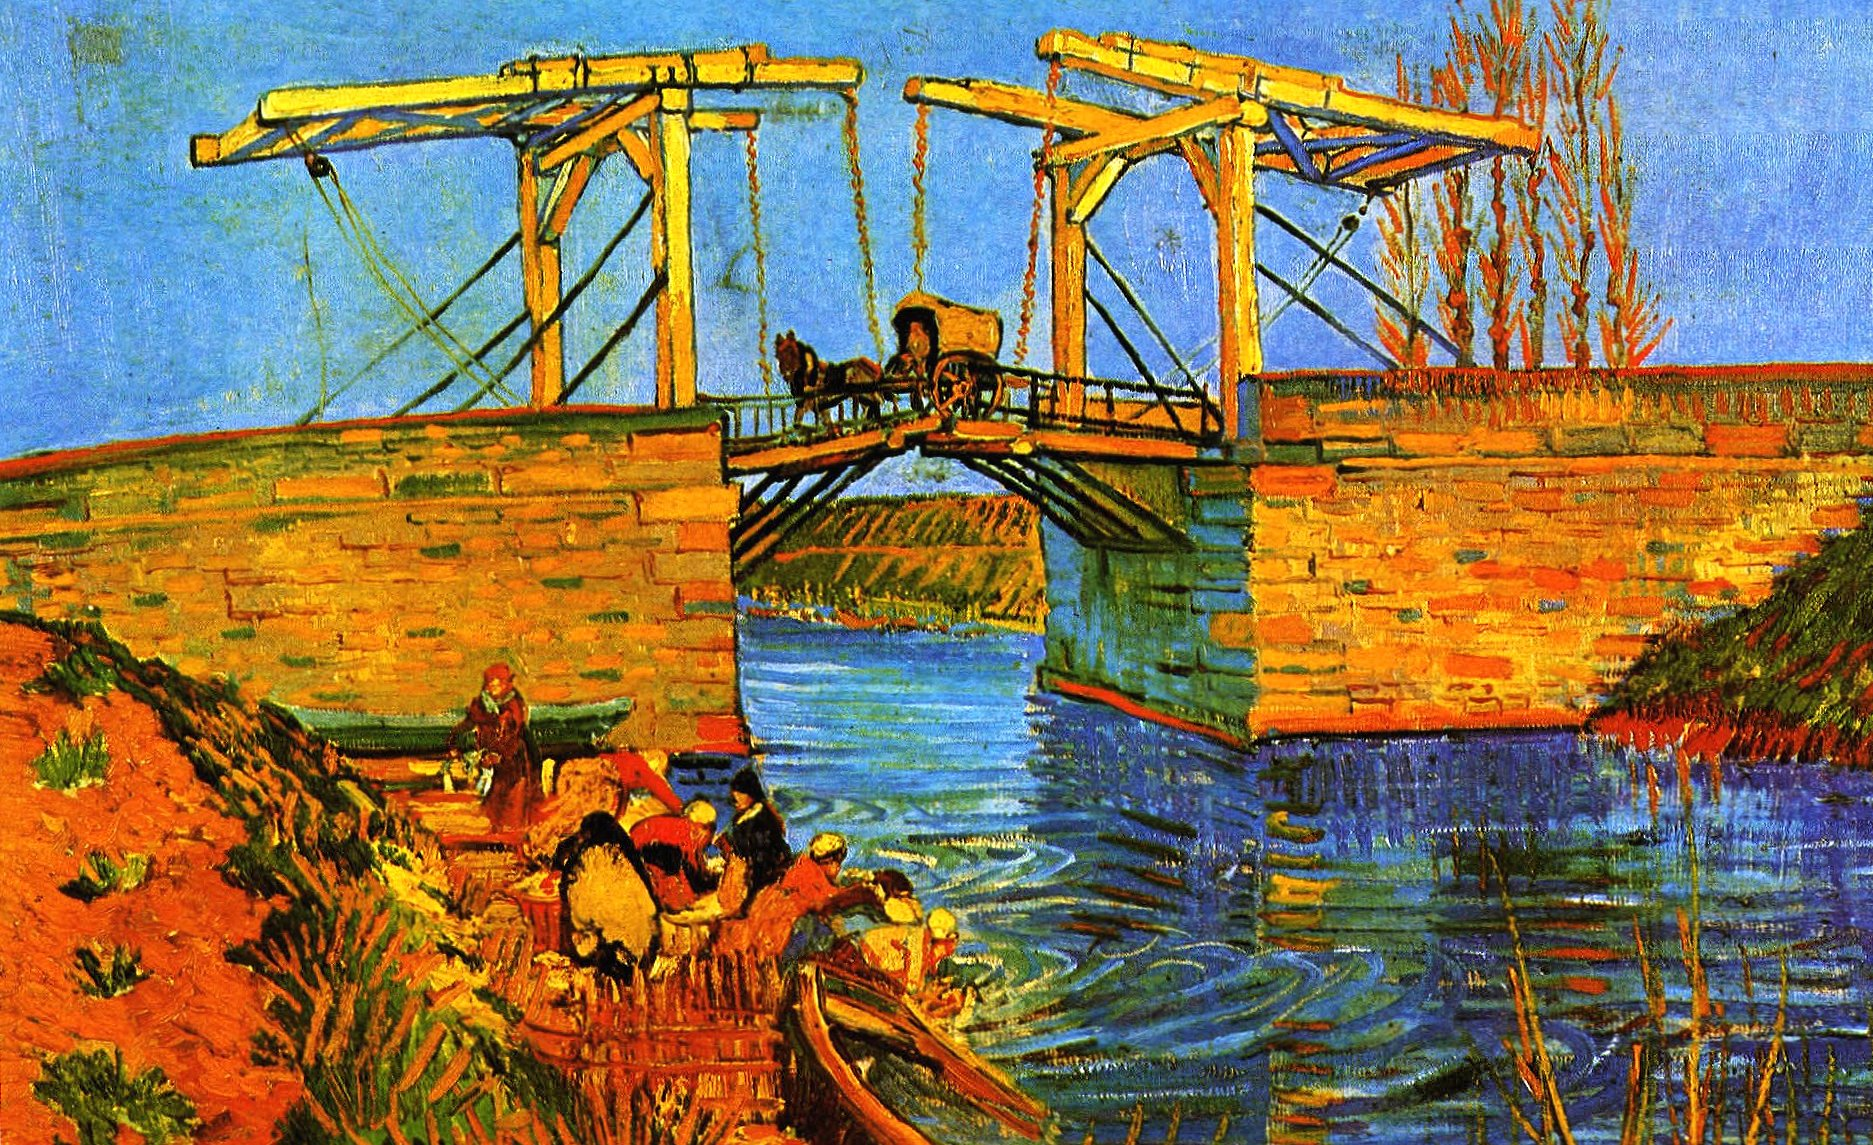 Vincent van gogh bridge wallpapers HD quality